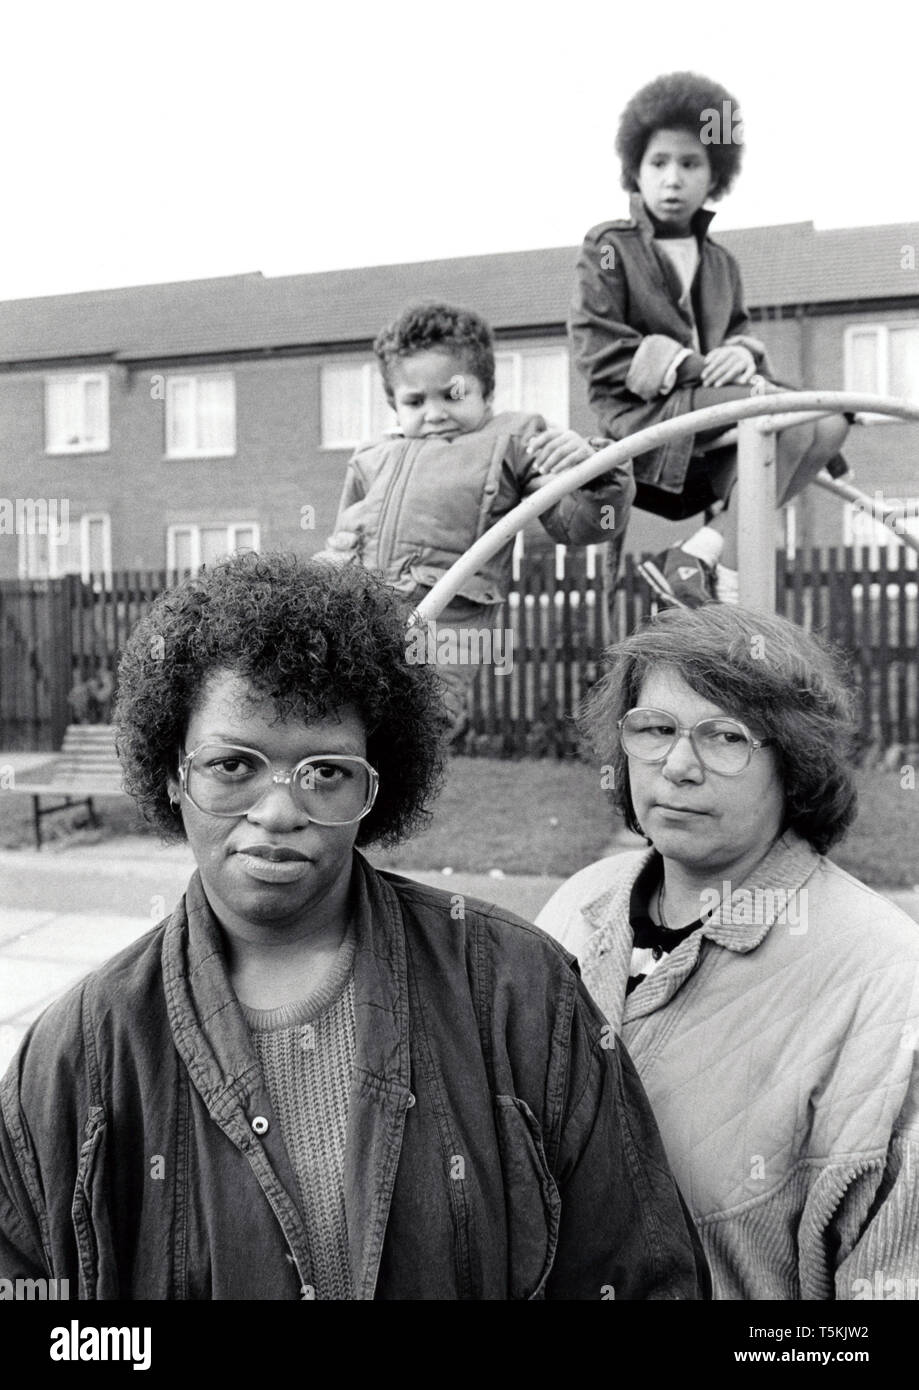 Mothers and small children in playground, UK 1989 - Stock Image